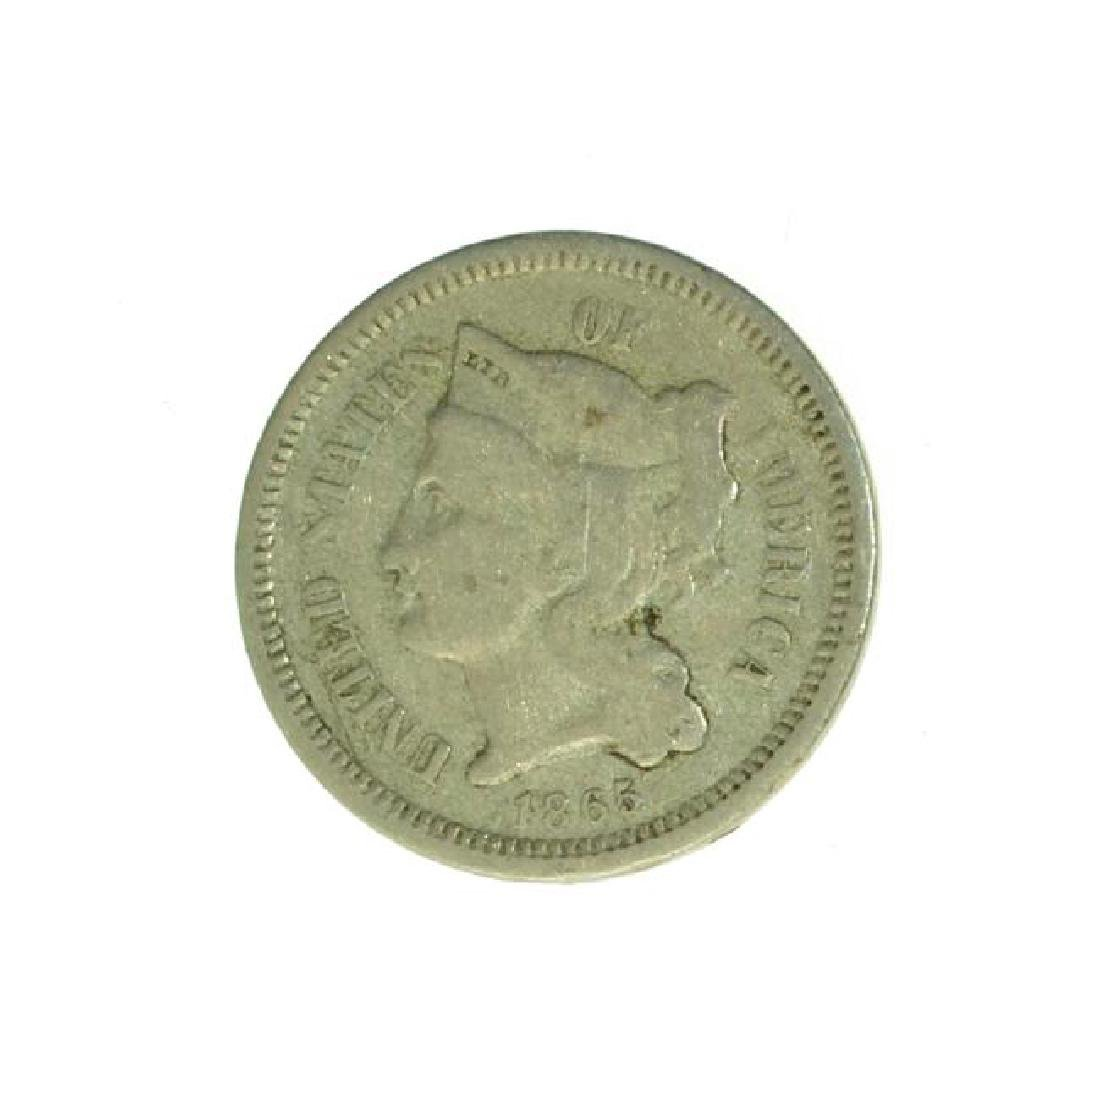 1865 3 Cent Nickel Coin (JG)